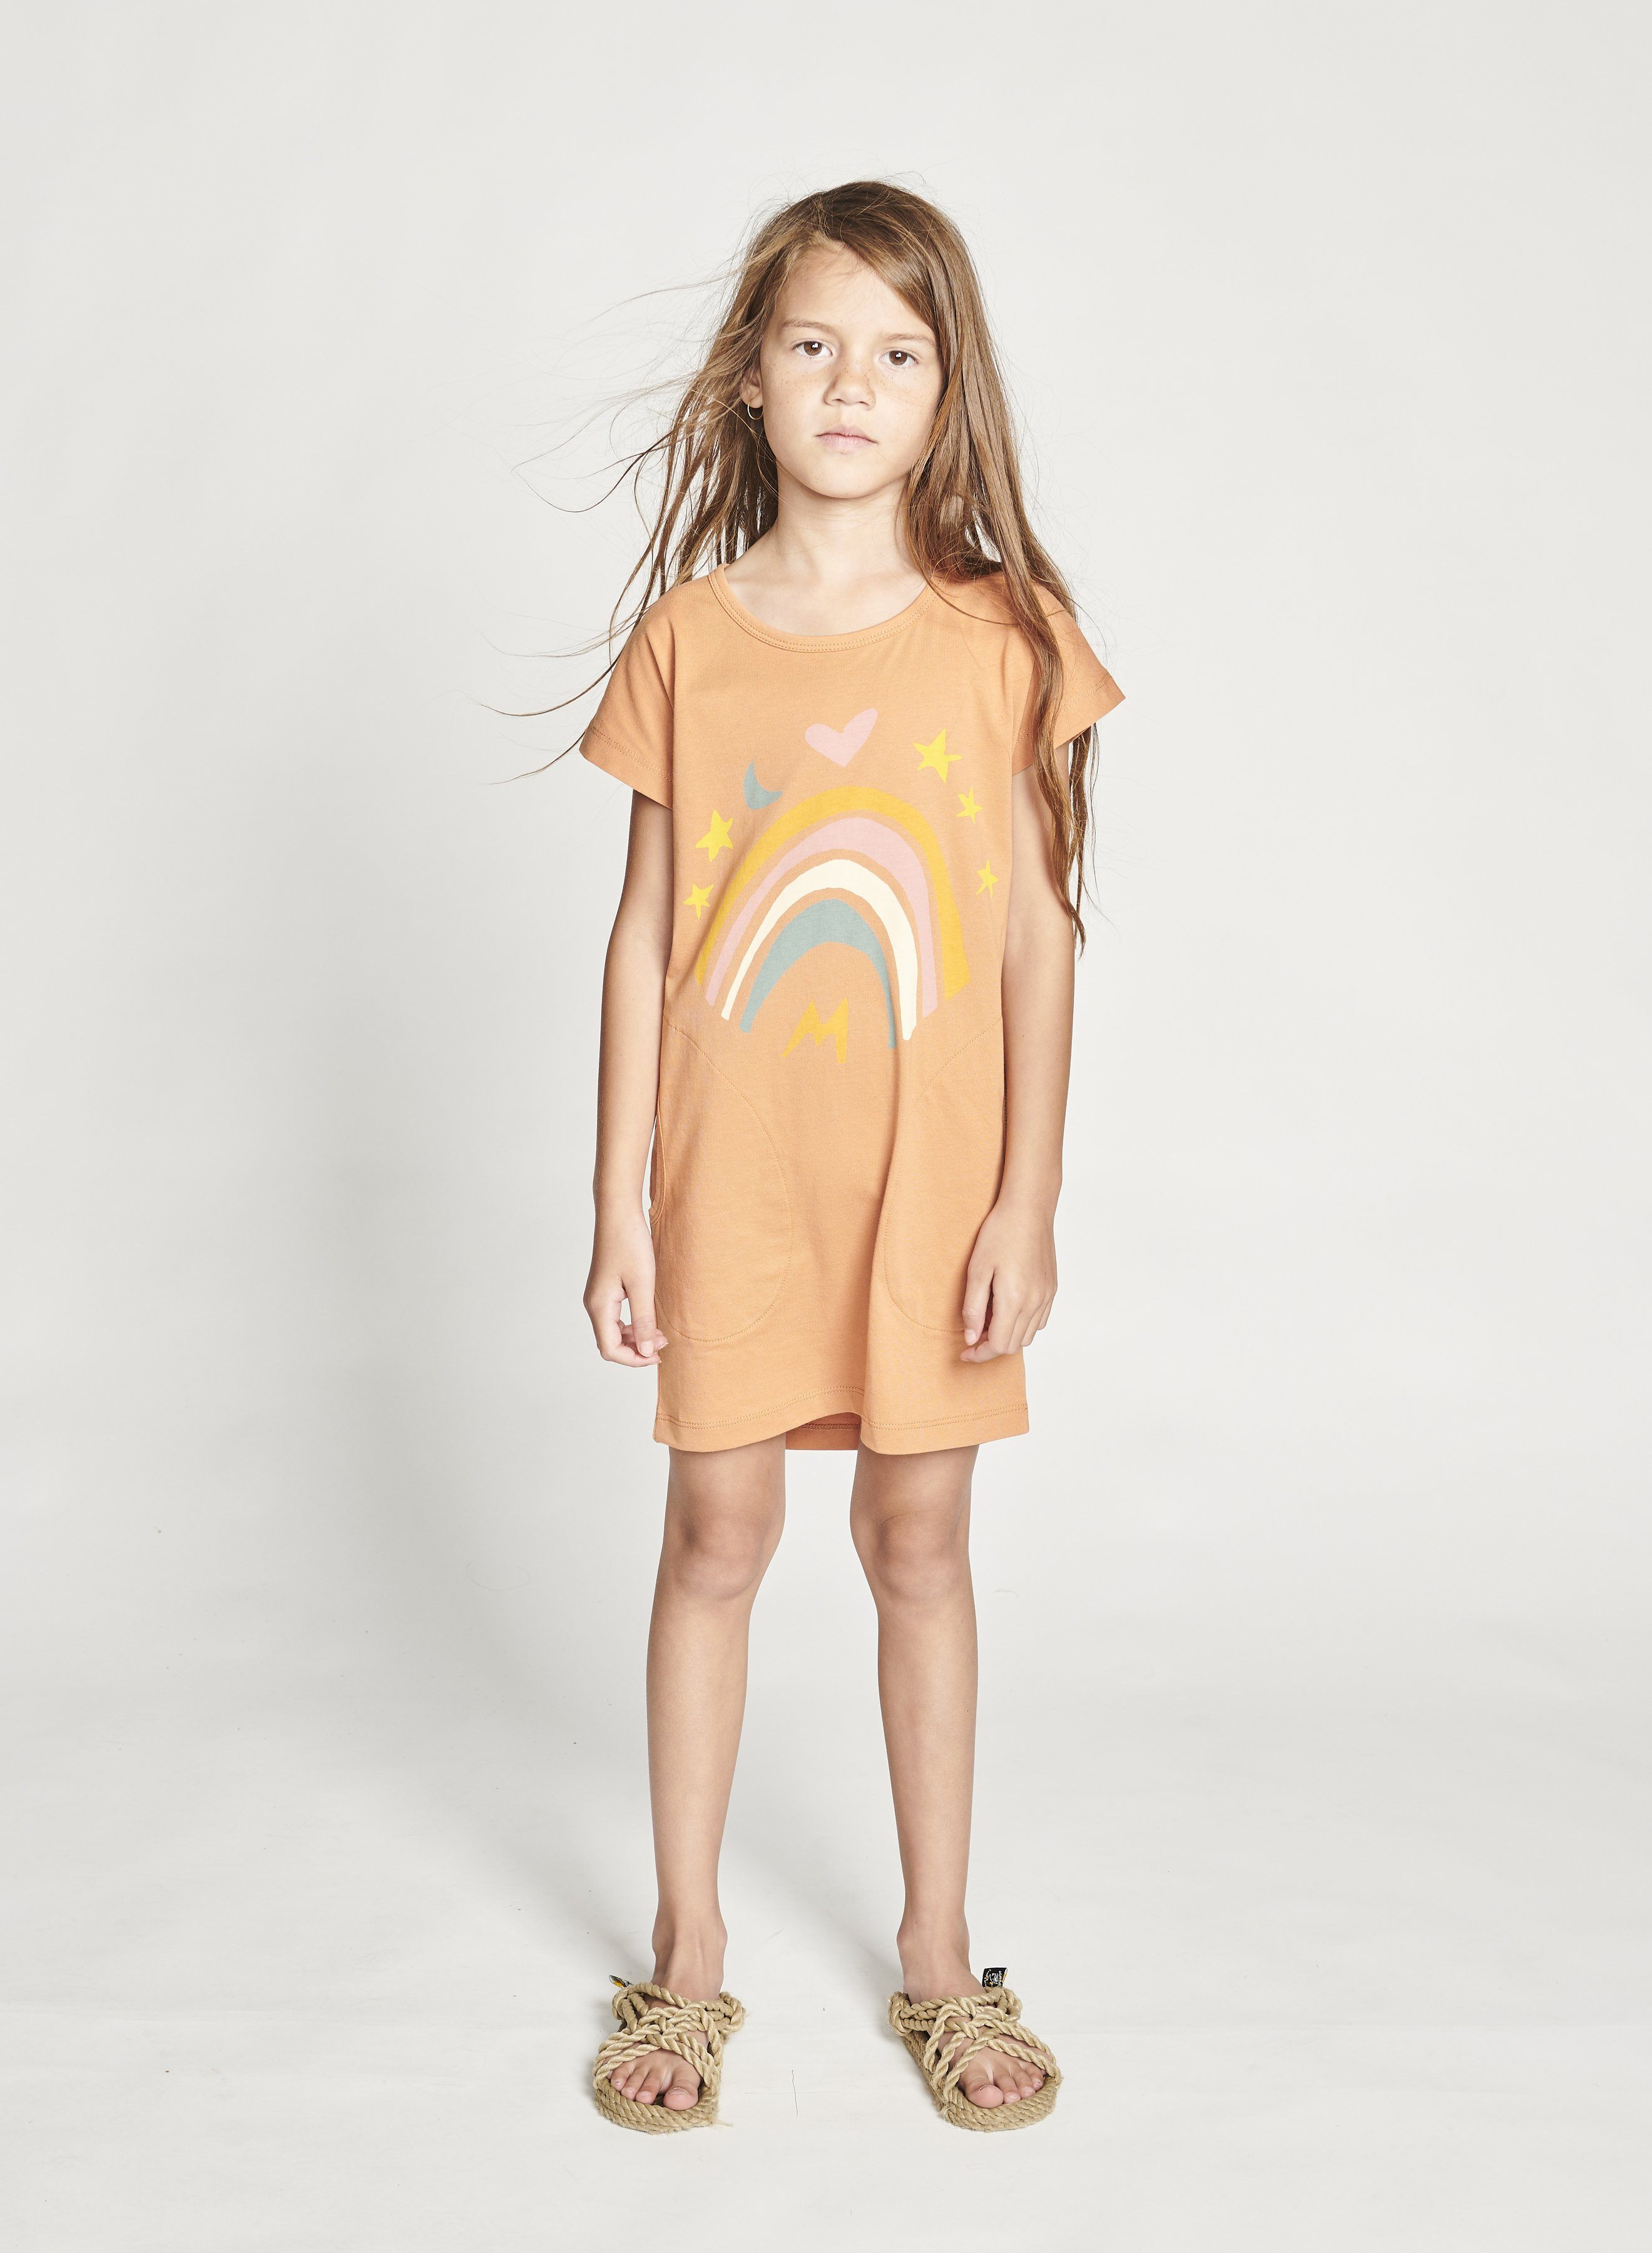 Missie Munster - Pastel Dreams Dress - Pheasant Girls Munster Kids